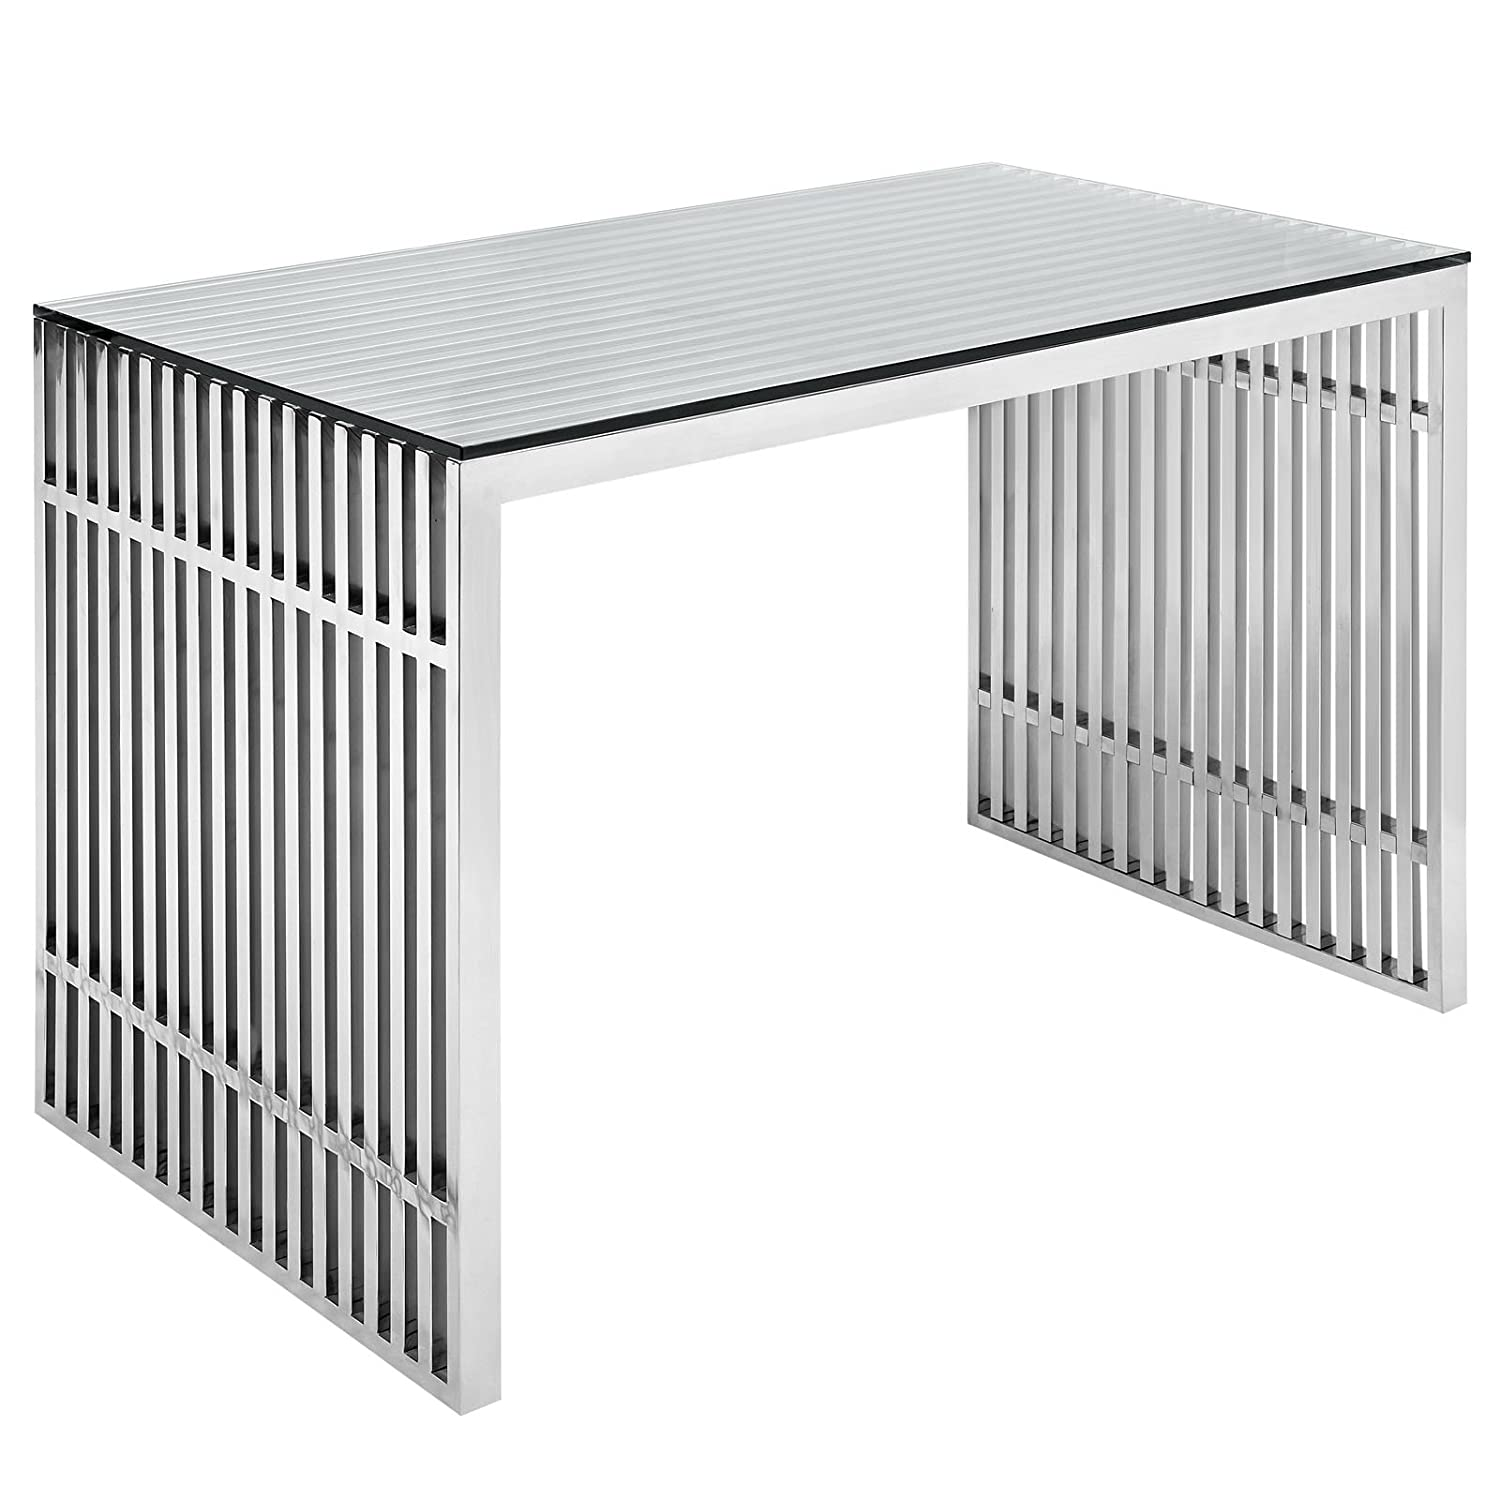 amazoncom modway gridiron stainless steel office desk in silver kitchen dining. amazoncom modway gridiron stainless steel office desk in silver